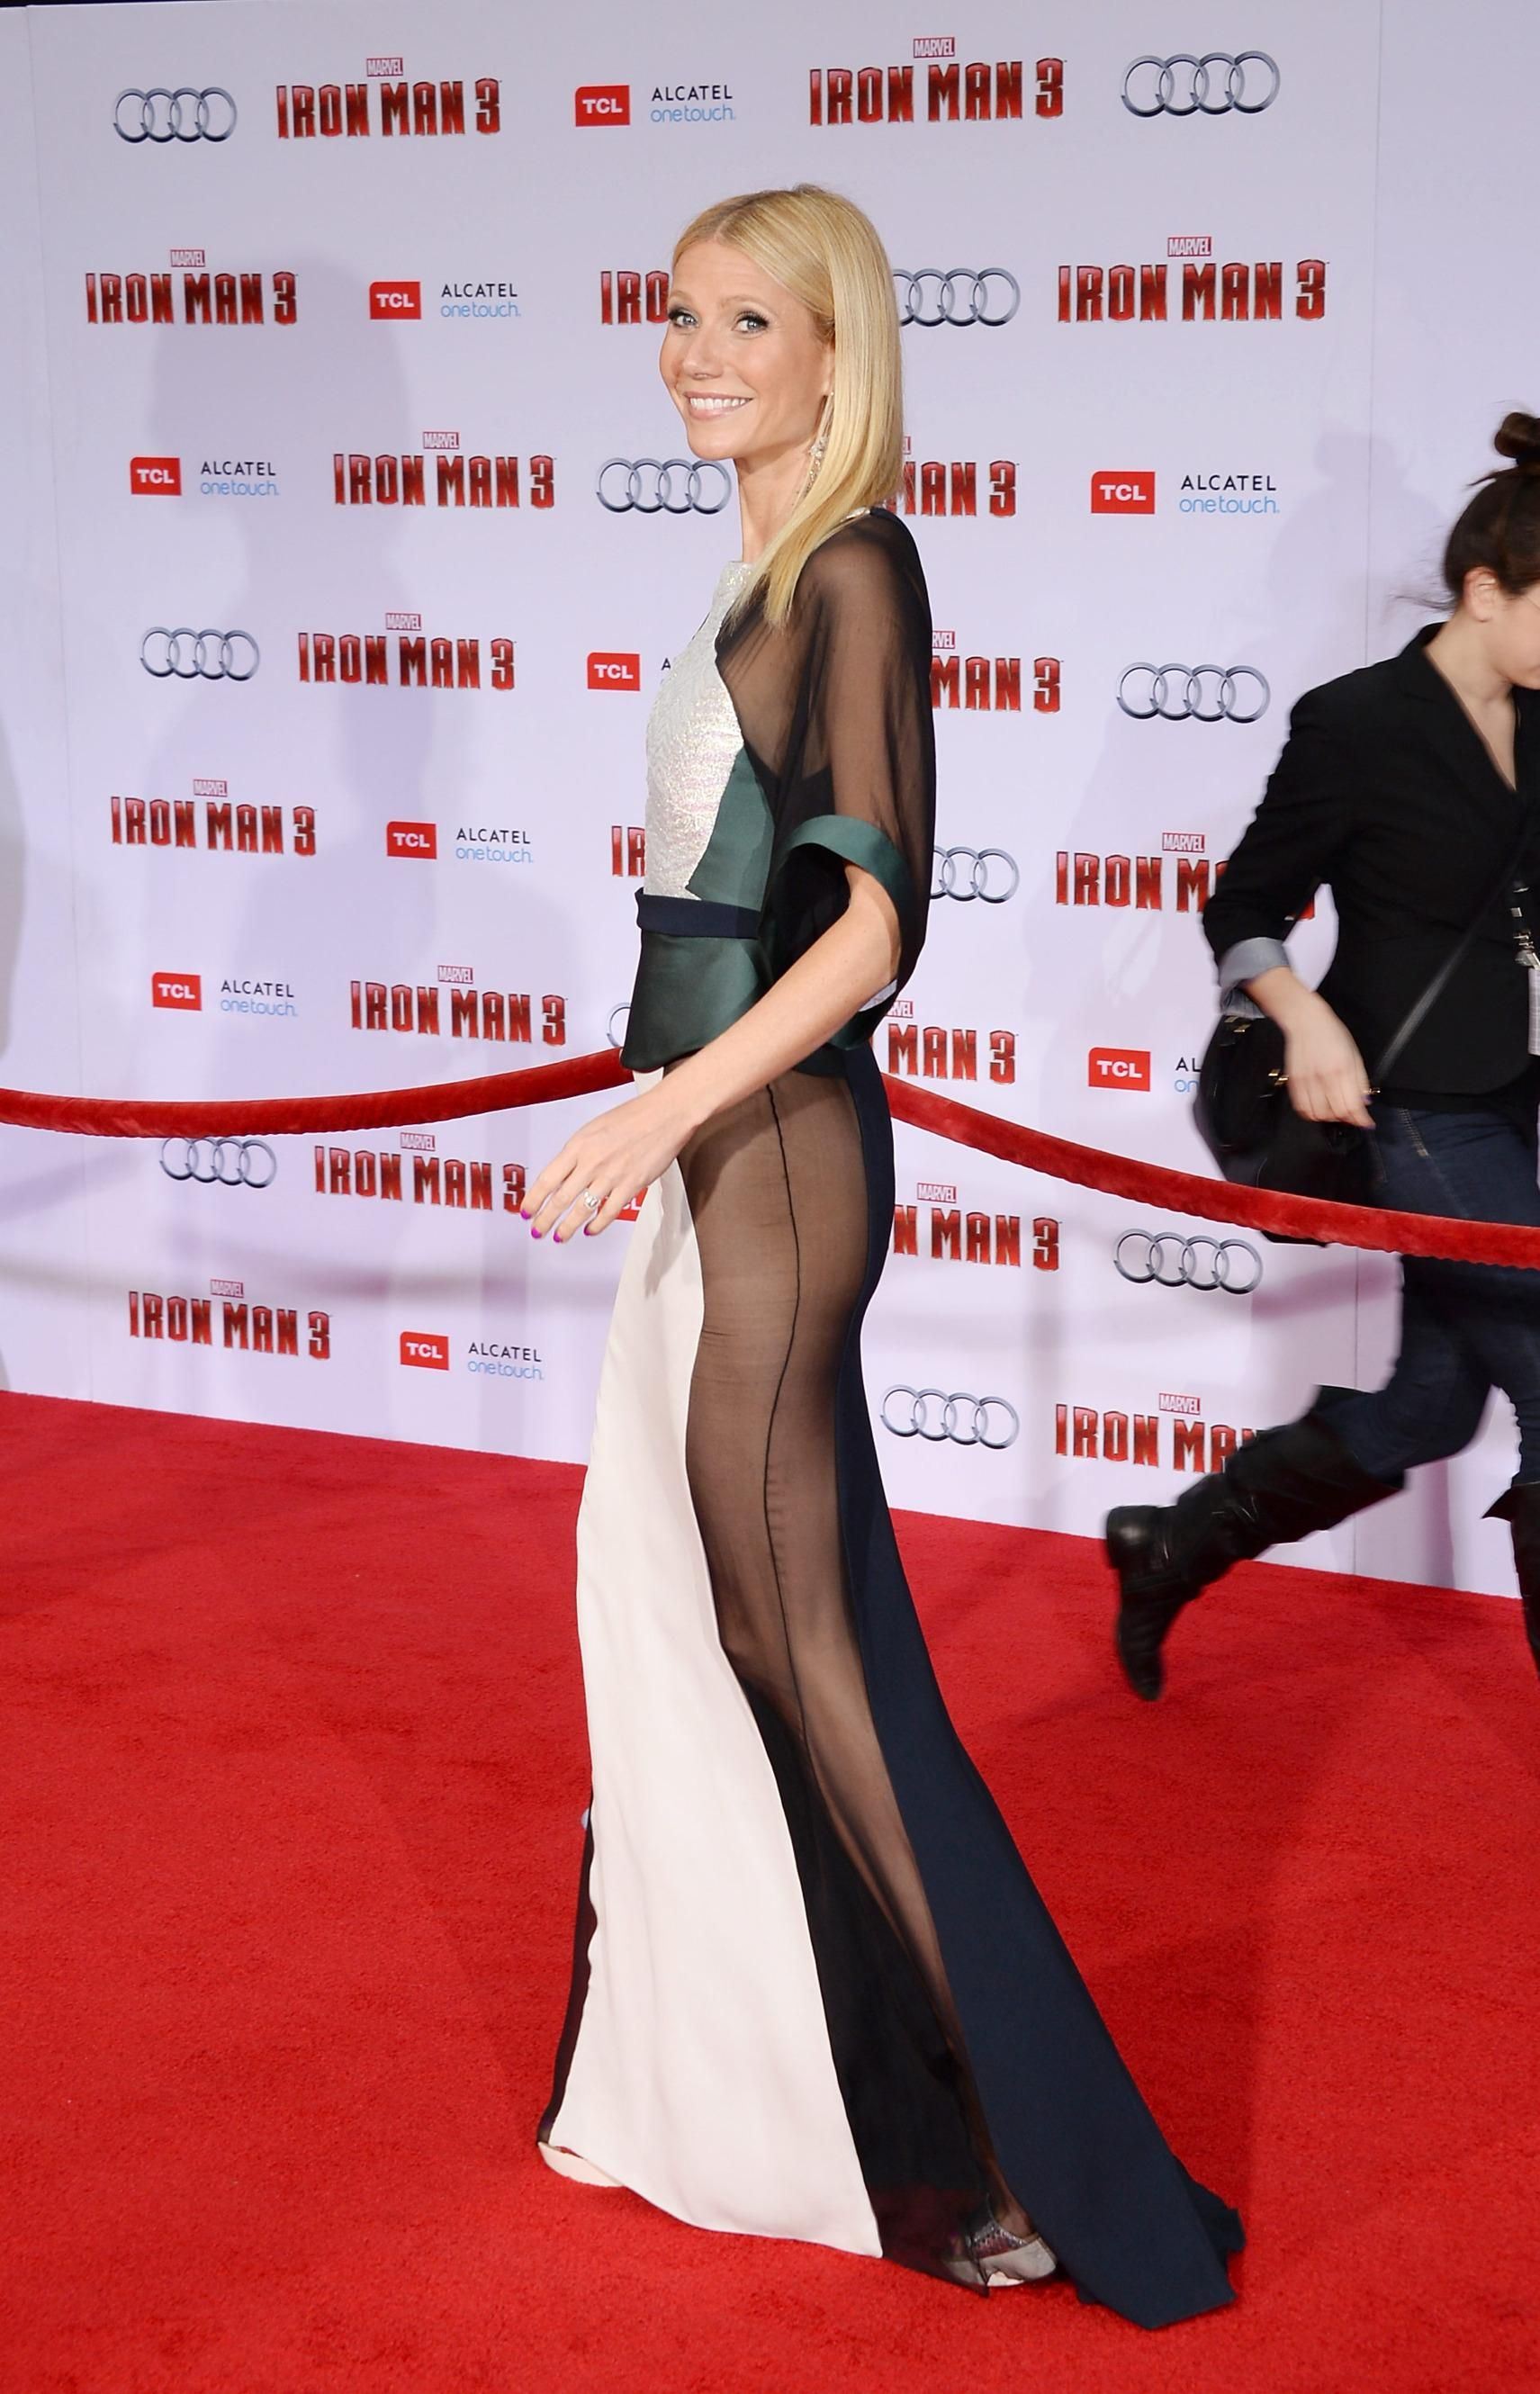 Gwyneth Paltrow's Iron Man Sidebutt Dress Is One Of The Sexiest Dresses Of All Time